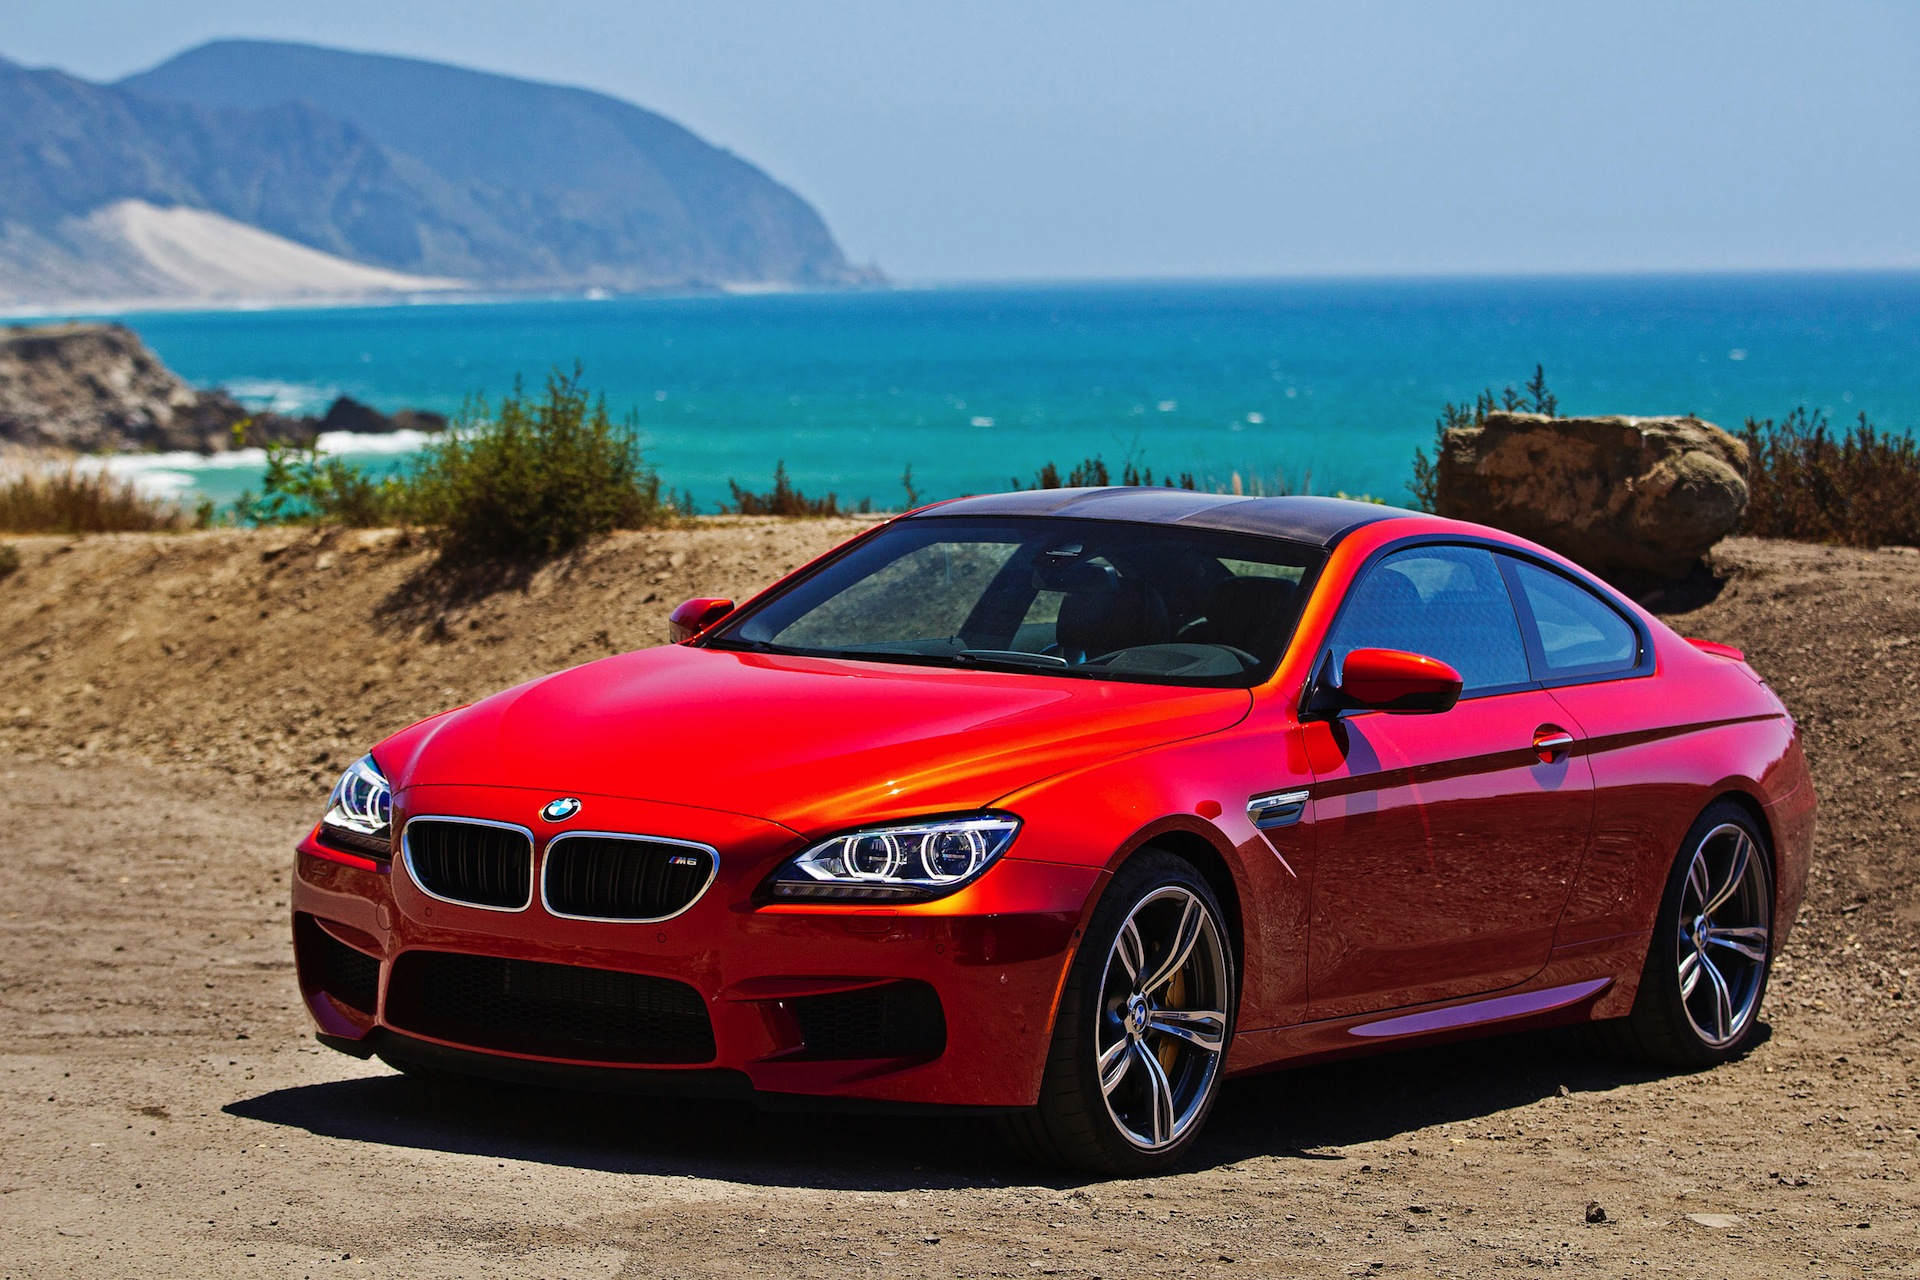 2013 Bmw M6 Coupe F13 North America Launch And